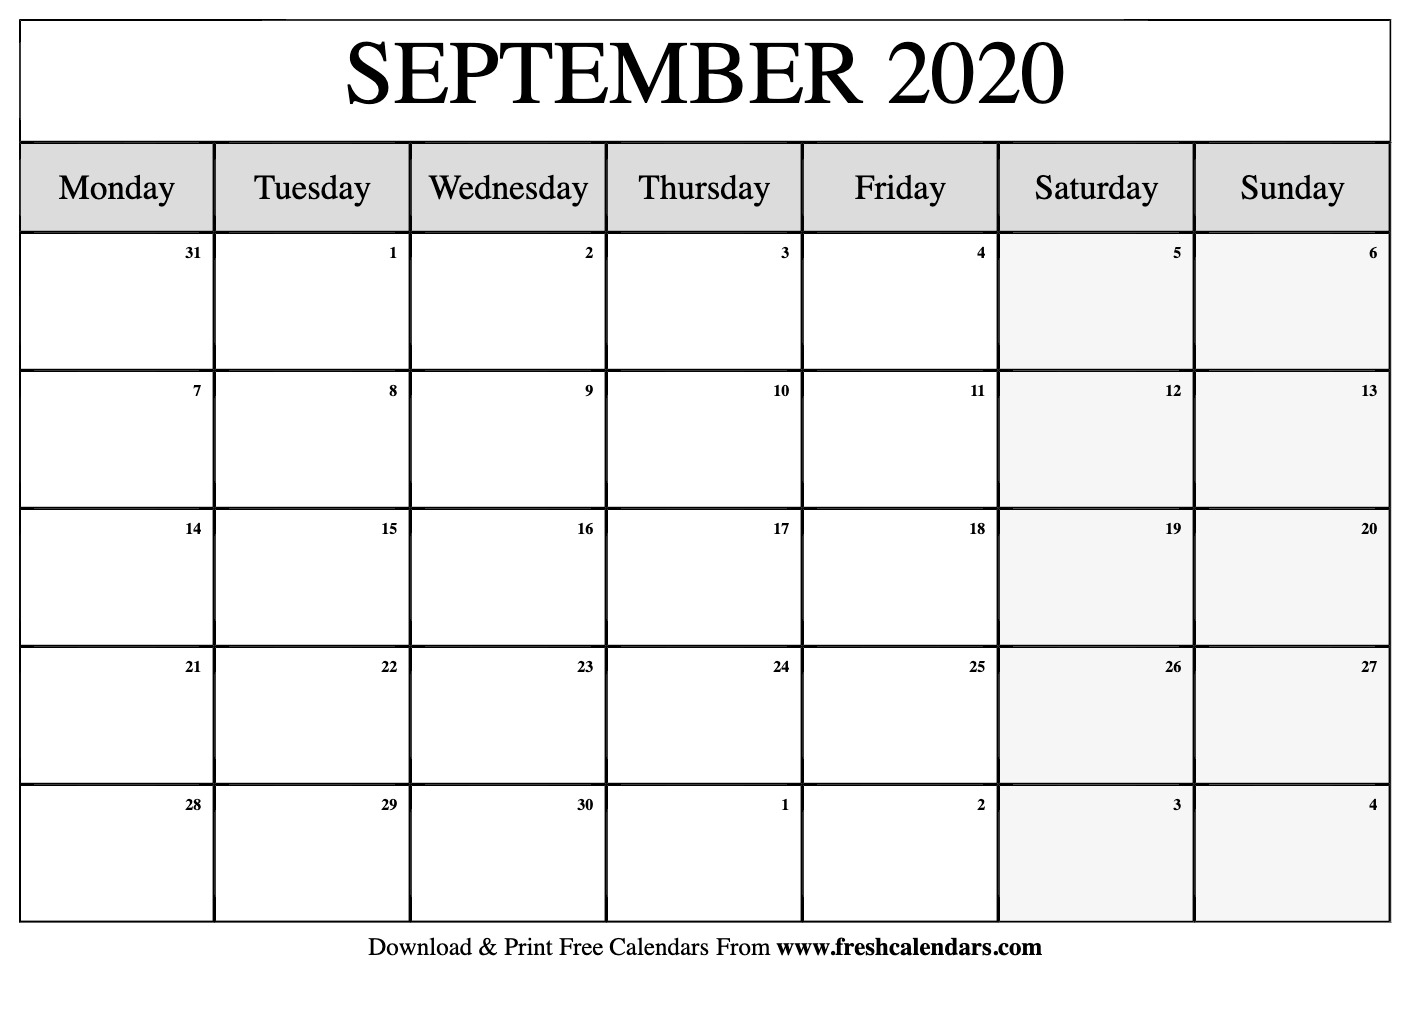 Free Printable September 2020 Calendar throughout Calendar August And September 2020